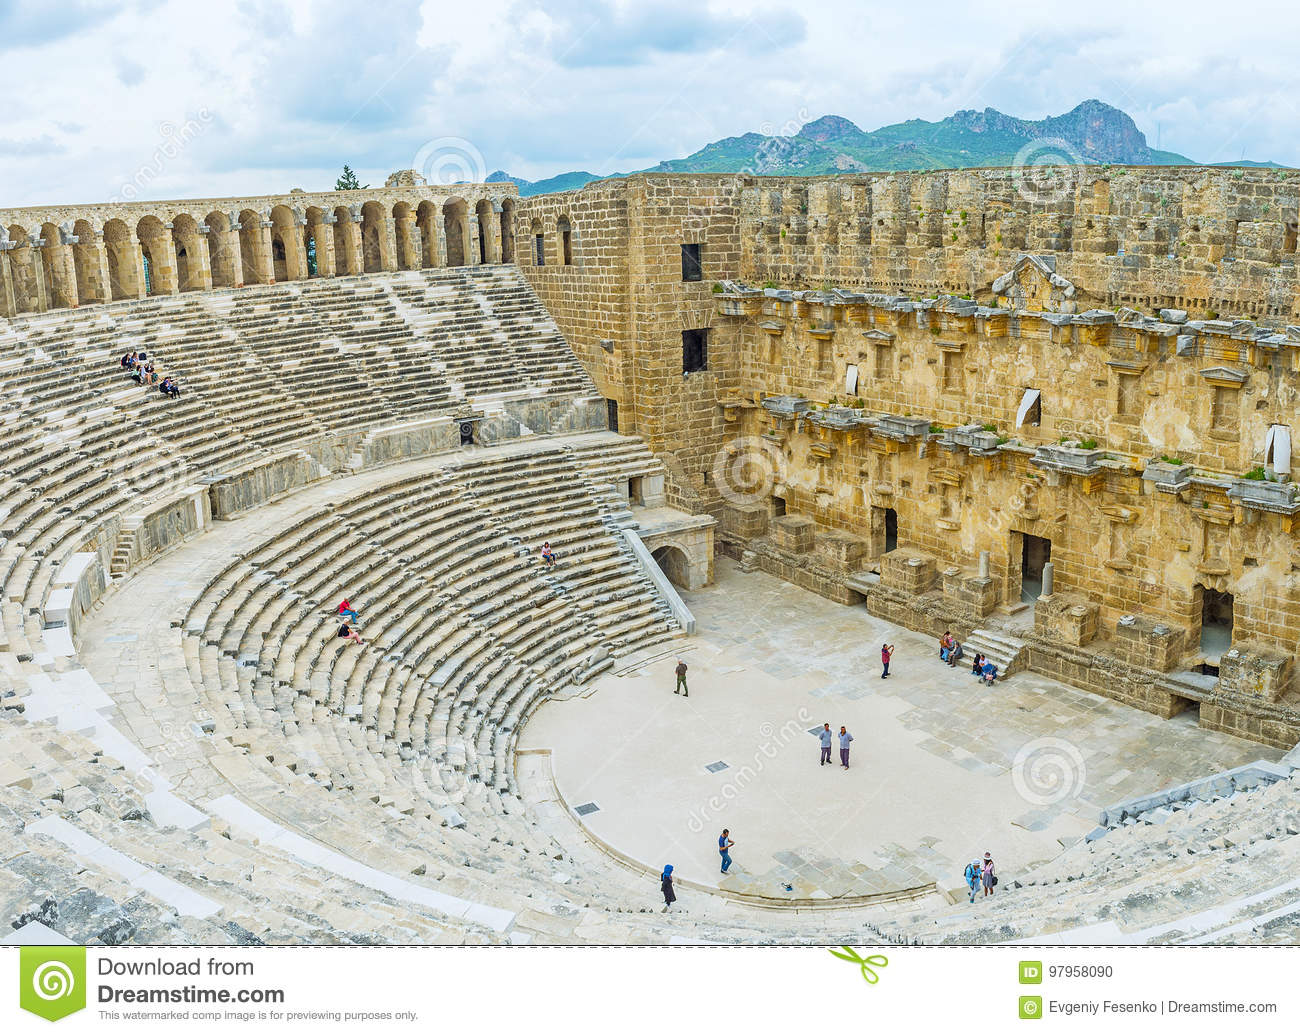 ARISTOTELES furthermore The Stone  hitheater In Aspendos Editorial Image   Image of in addition Aspendos  Antalya   Google My Maps furthermore map of turkey and greece   Hairstyle Artist Indonesia additionally Sailing the Greek islands for mature adventurers furthermore 14 DAYS TURKEY PACKAGE TOUR ISTANBUL GALLIPOLI TROY PERGAMON EPHESUS together with Turkish Riviera Turkey in addition Turkey travel map stock vector  Illustration of agency   90086728 in addition Aspendos   Turkey further Turkey Vacations   Turkey Travel moreover  besides Geography for Kids  Turkey in addition  moreover Aspendos Turkey   Picture of Side  Manavgat   TripAdvisor furthermore Map of the towns and archaeological sites in the Republic of Turkey in addition . on aspendos turkey map